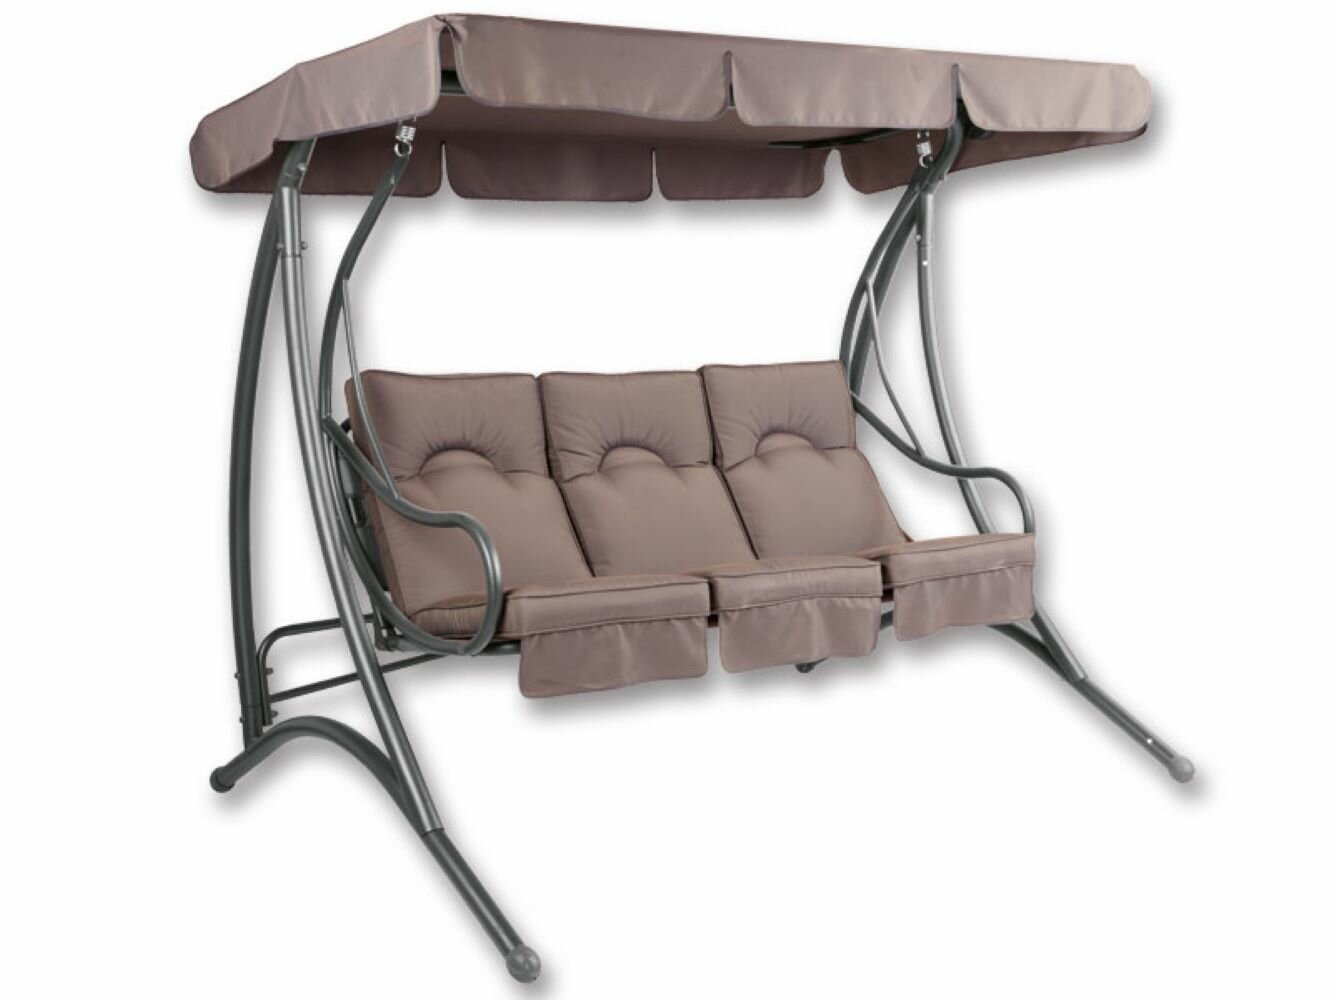 Rio Swing Seat With Stand